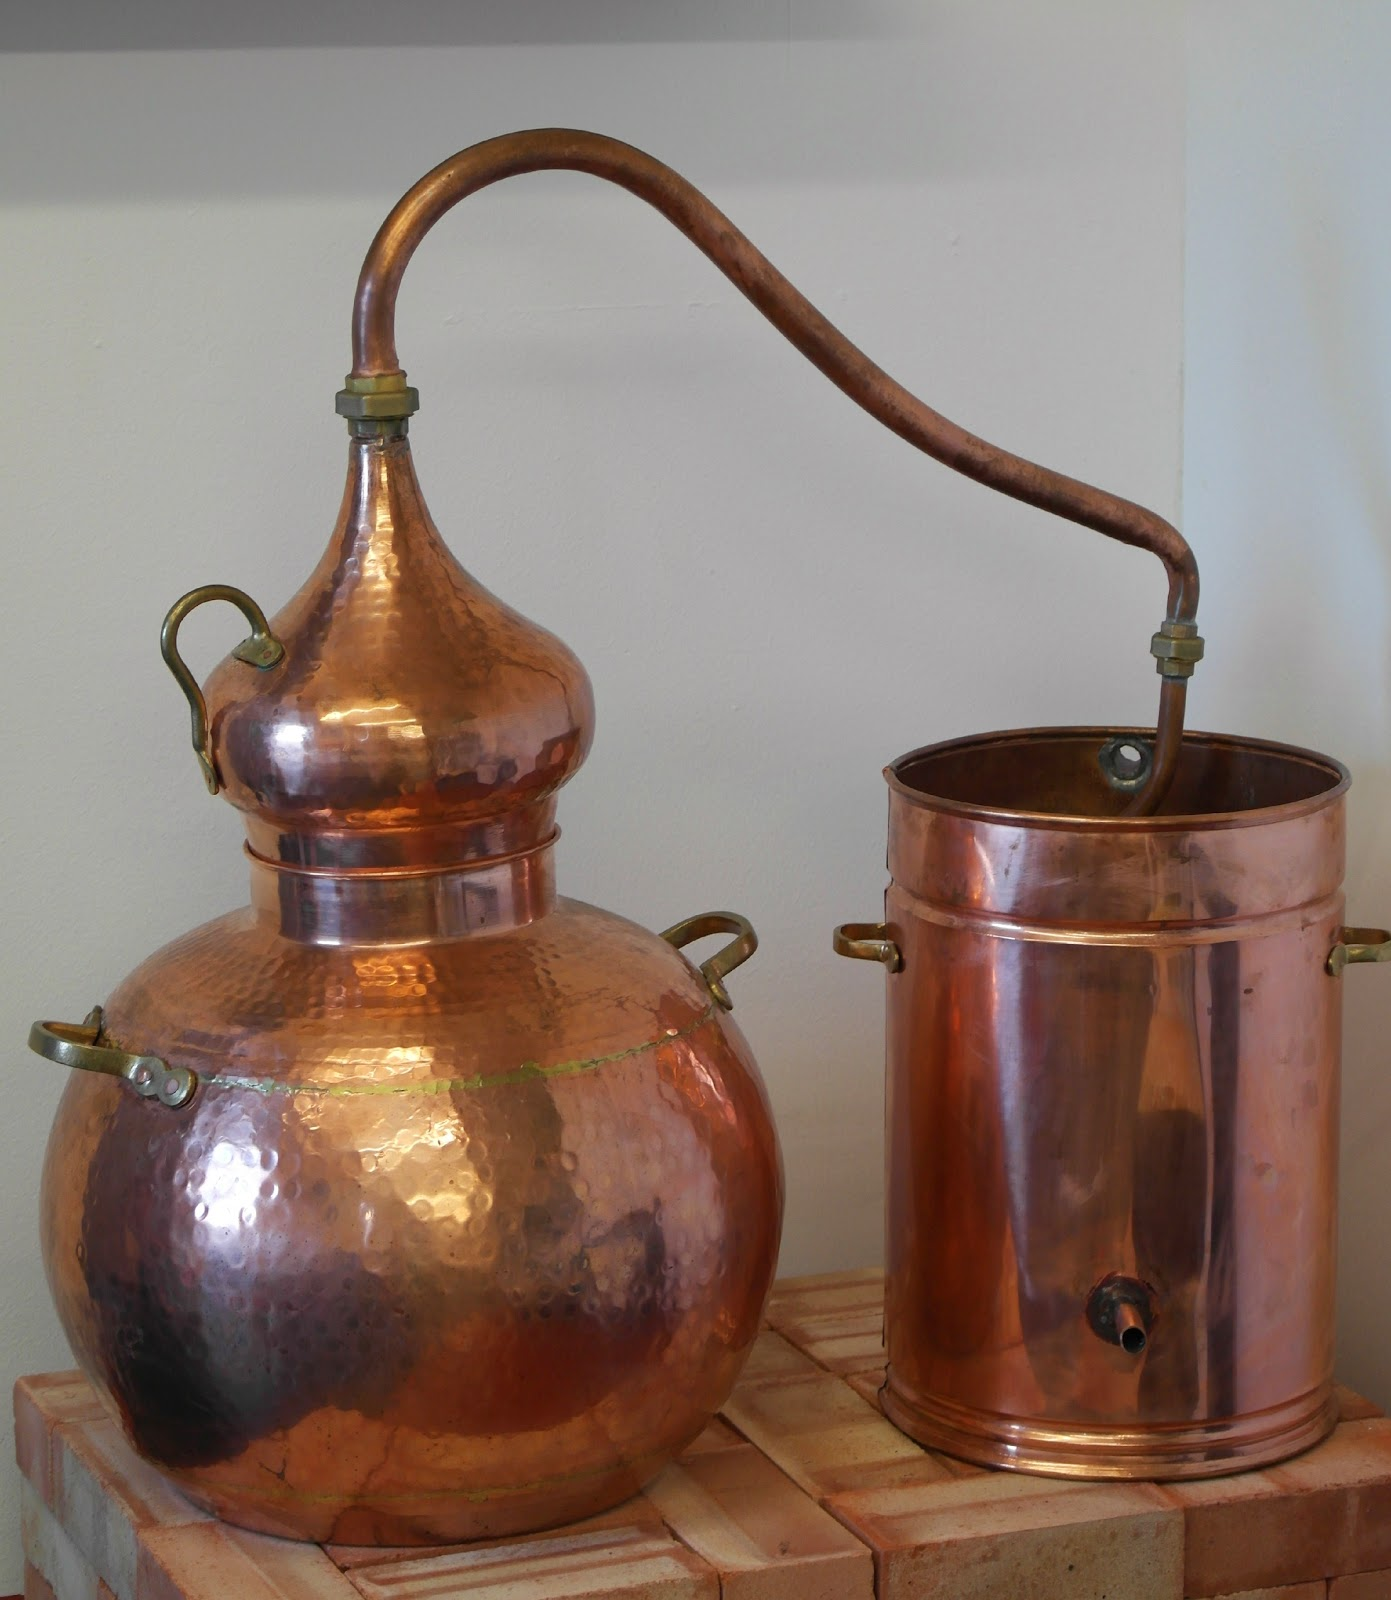 Copper vodka still